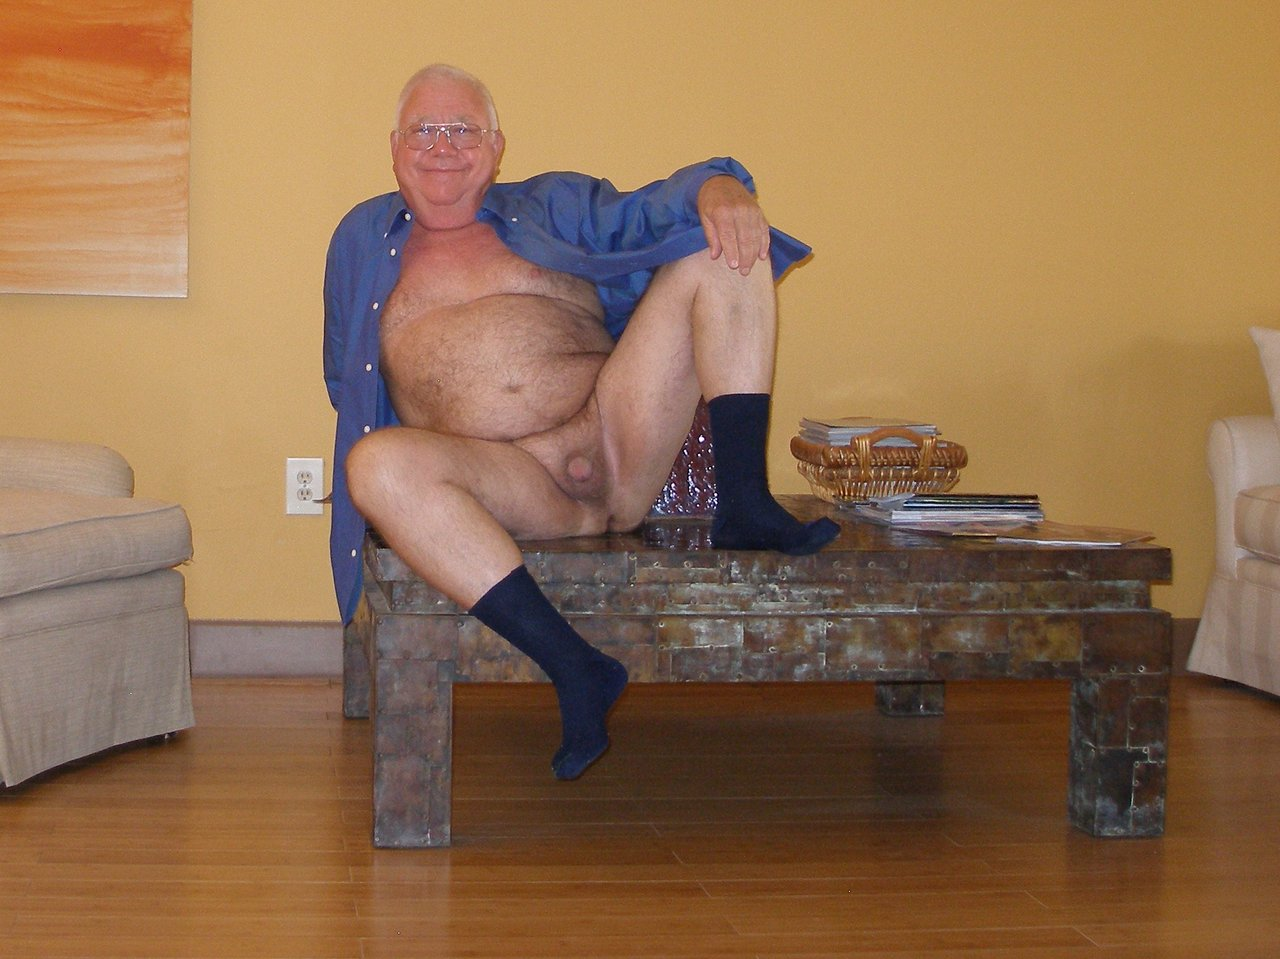 sexy old naked men - hairy older guys